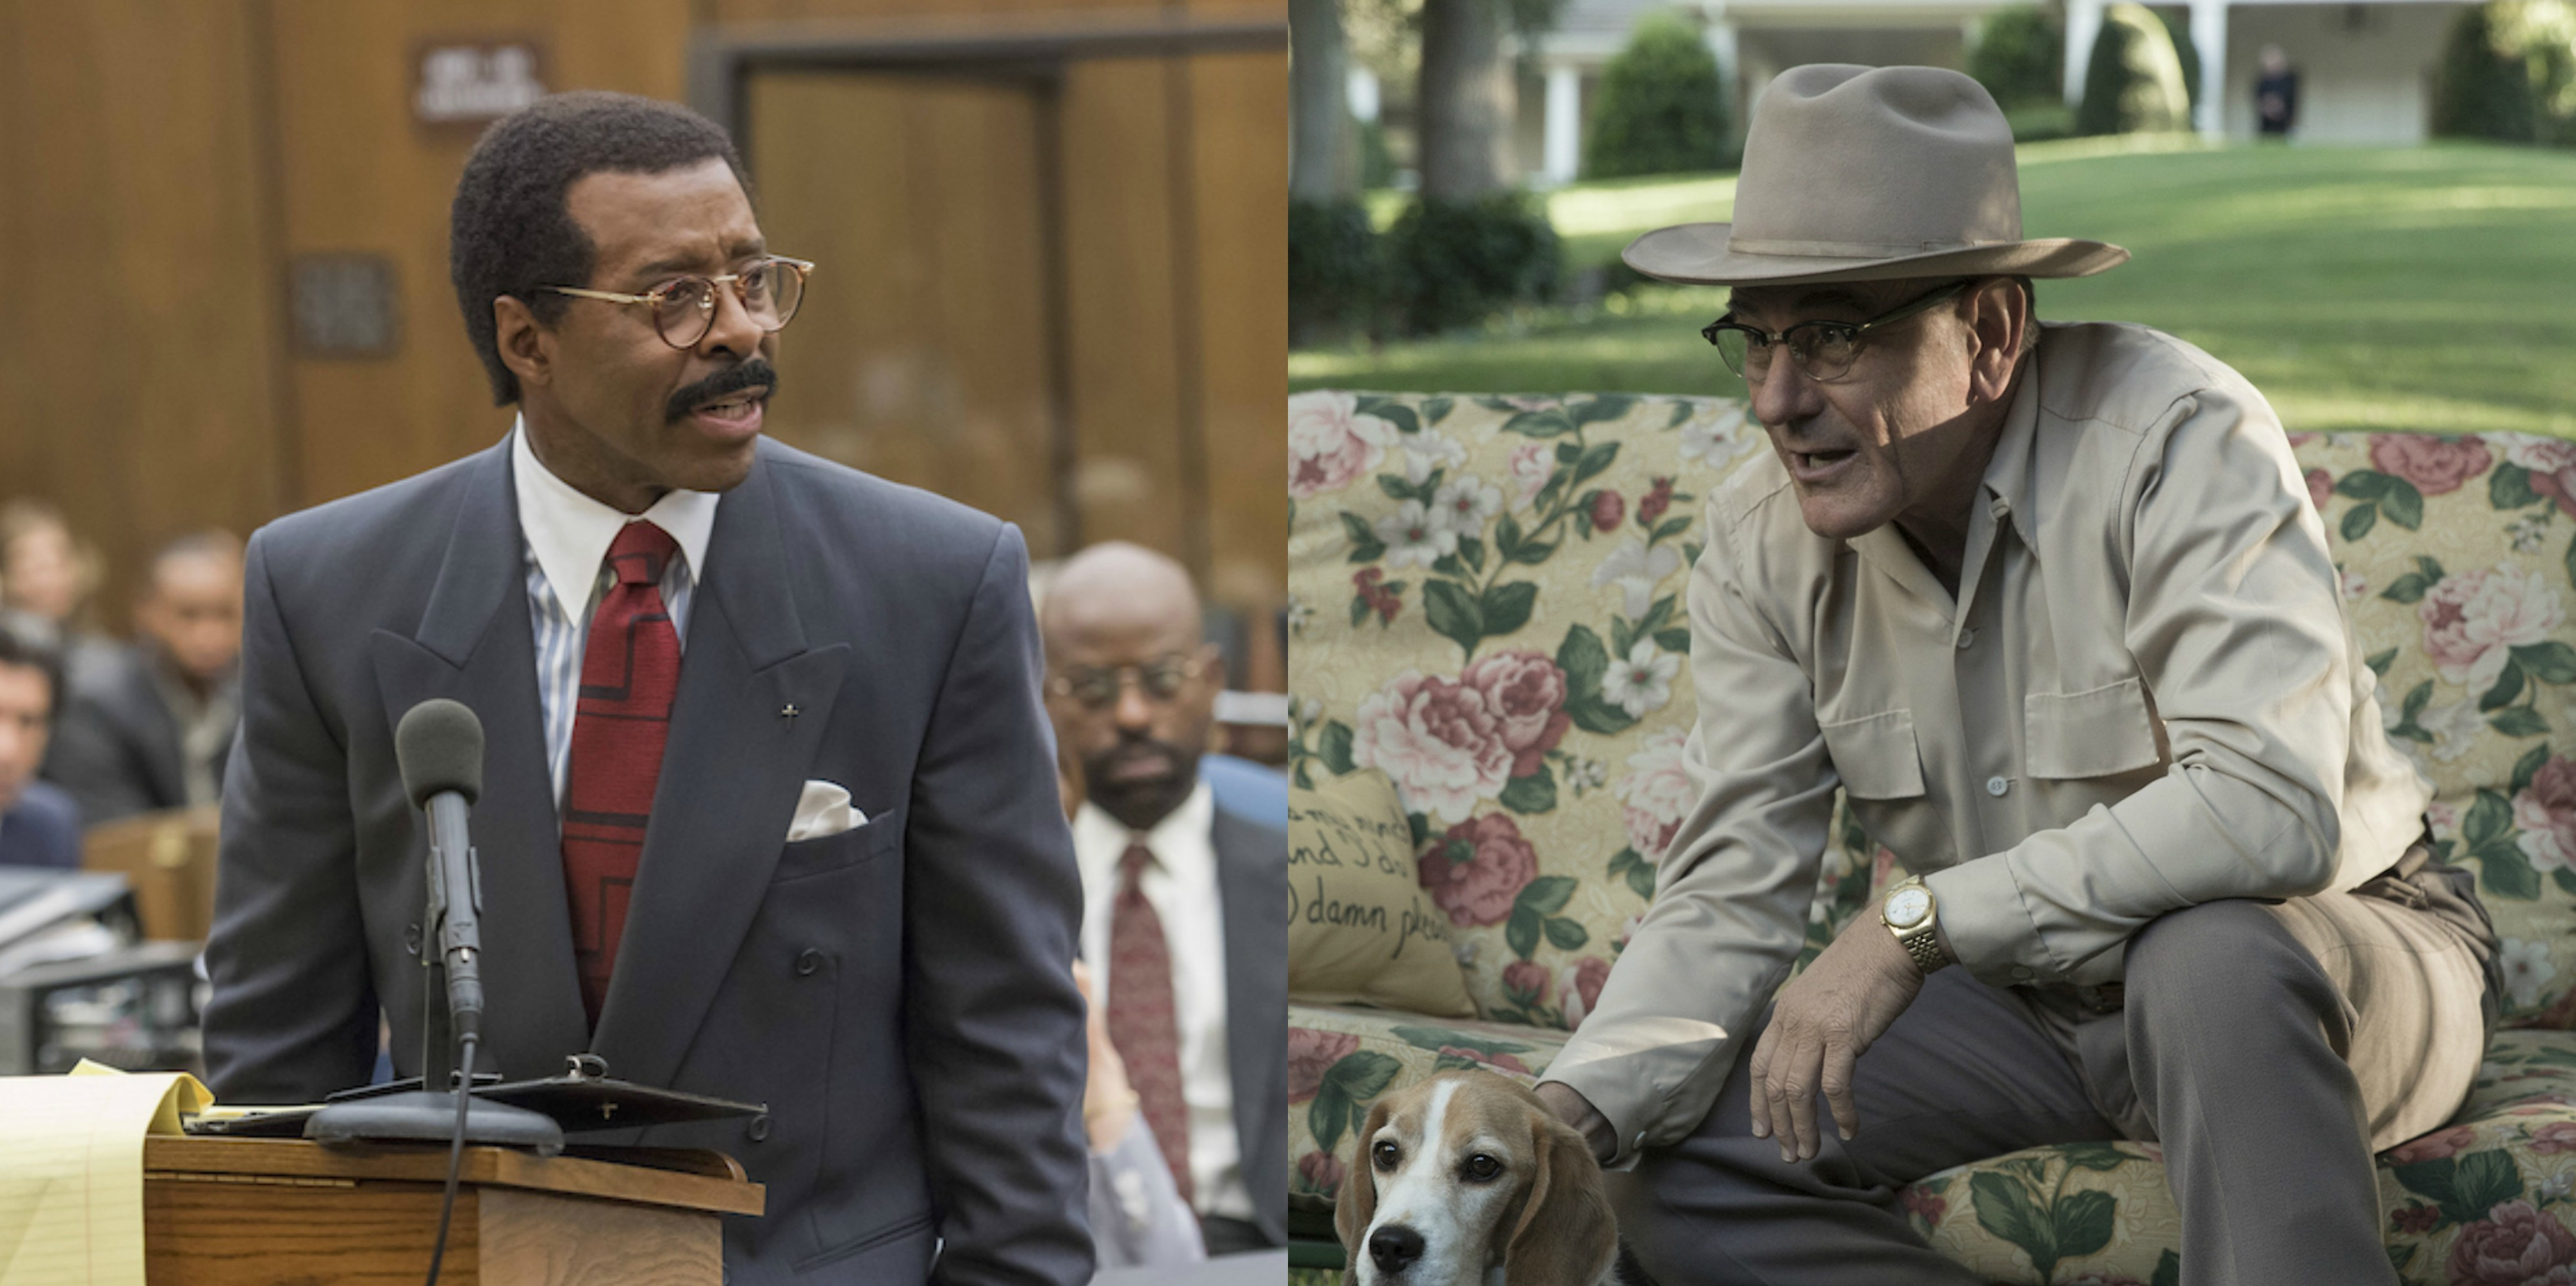 The People v. O.J. Simpson All the Way Courtney B. Vance Bryan Cranston